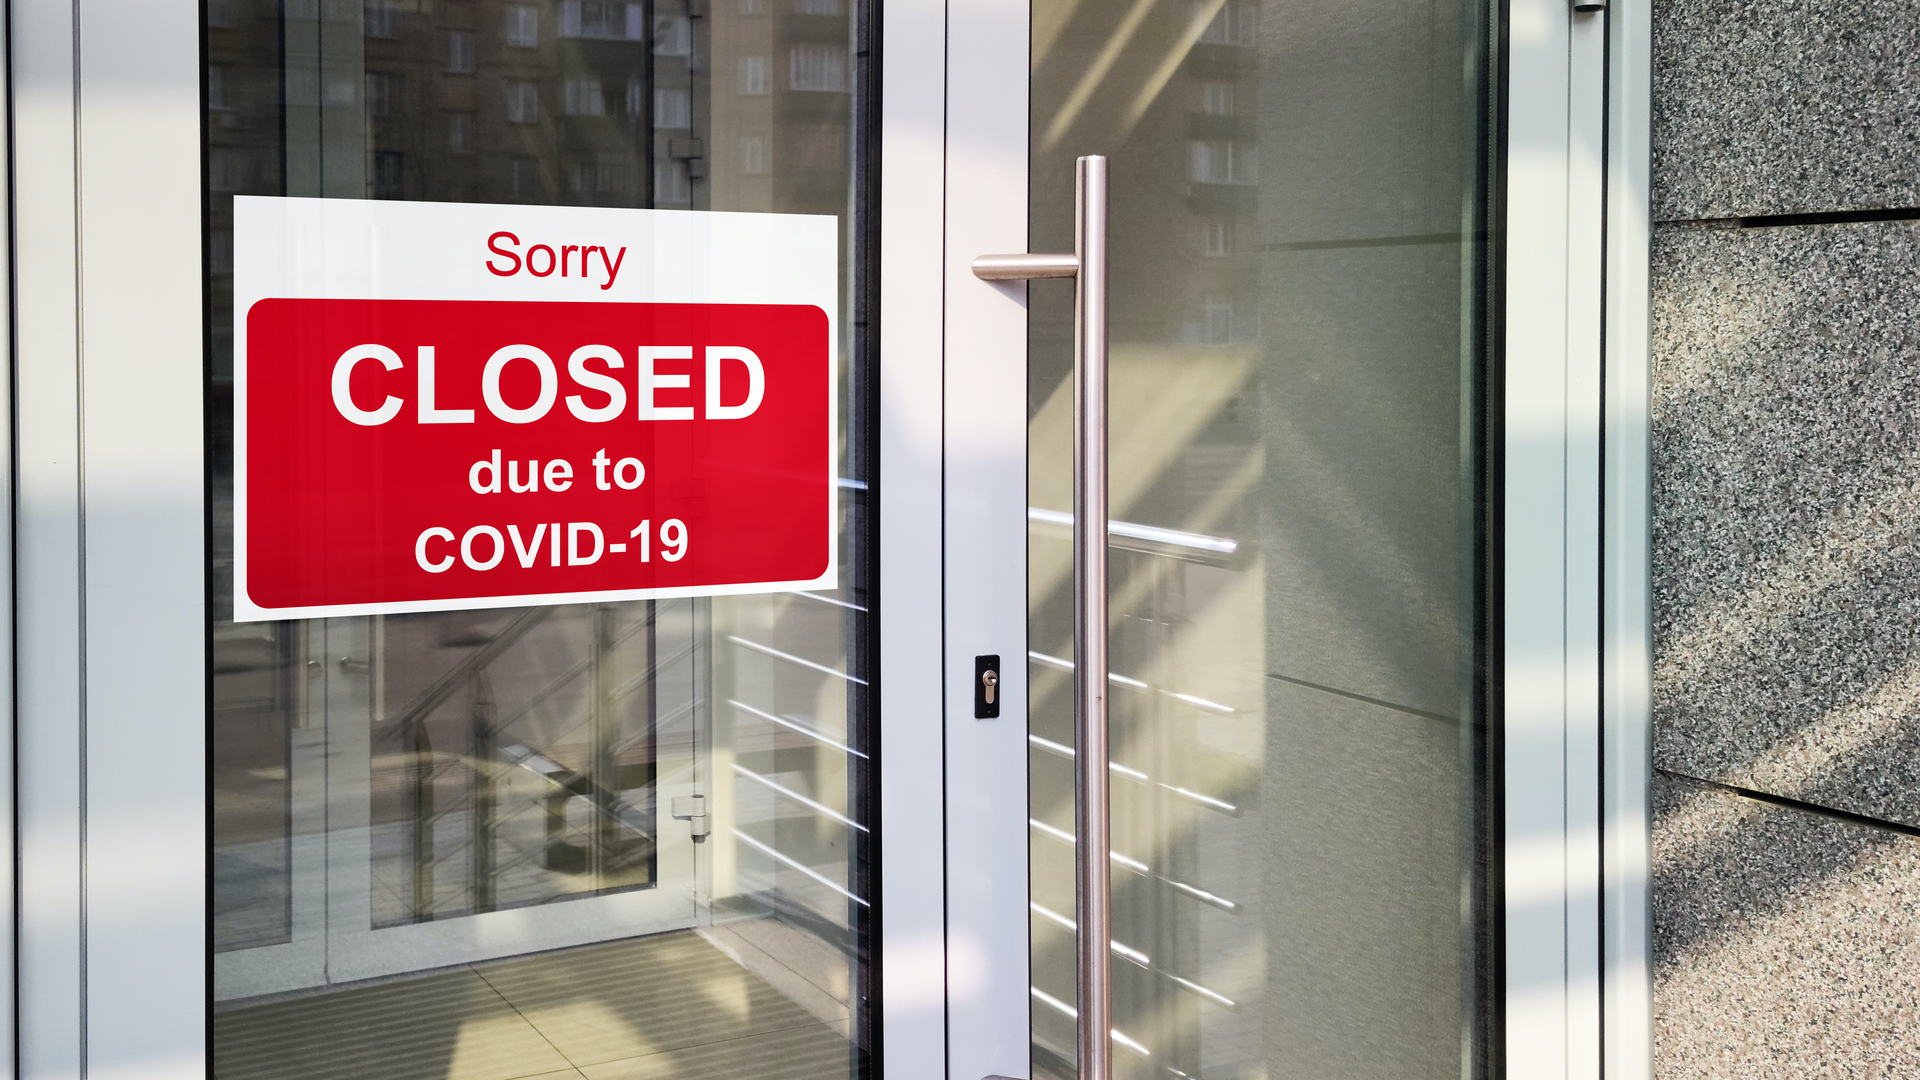 Business closed for lcockdown